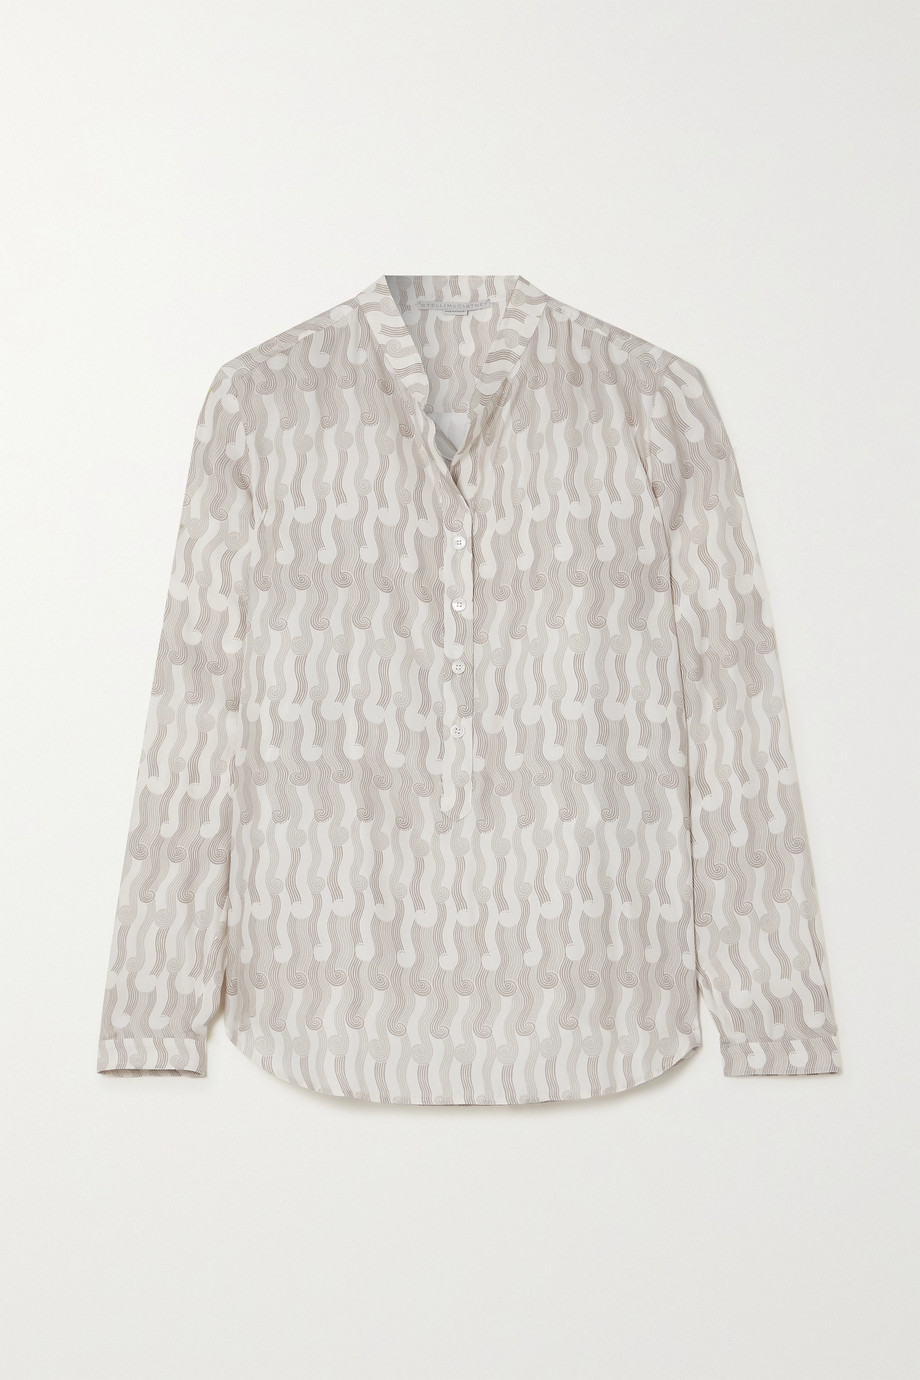 Stella McCartney Eva printed silk shirt